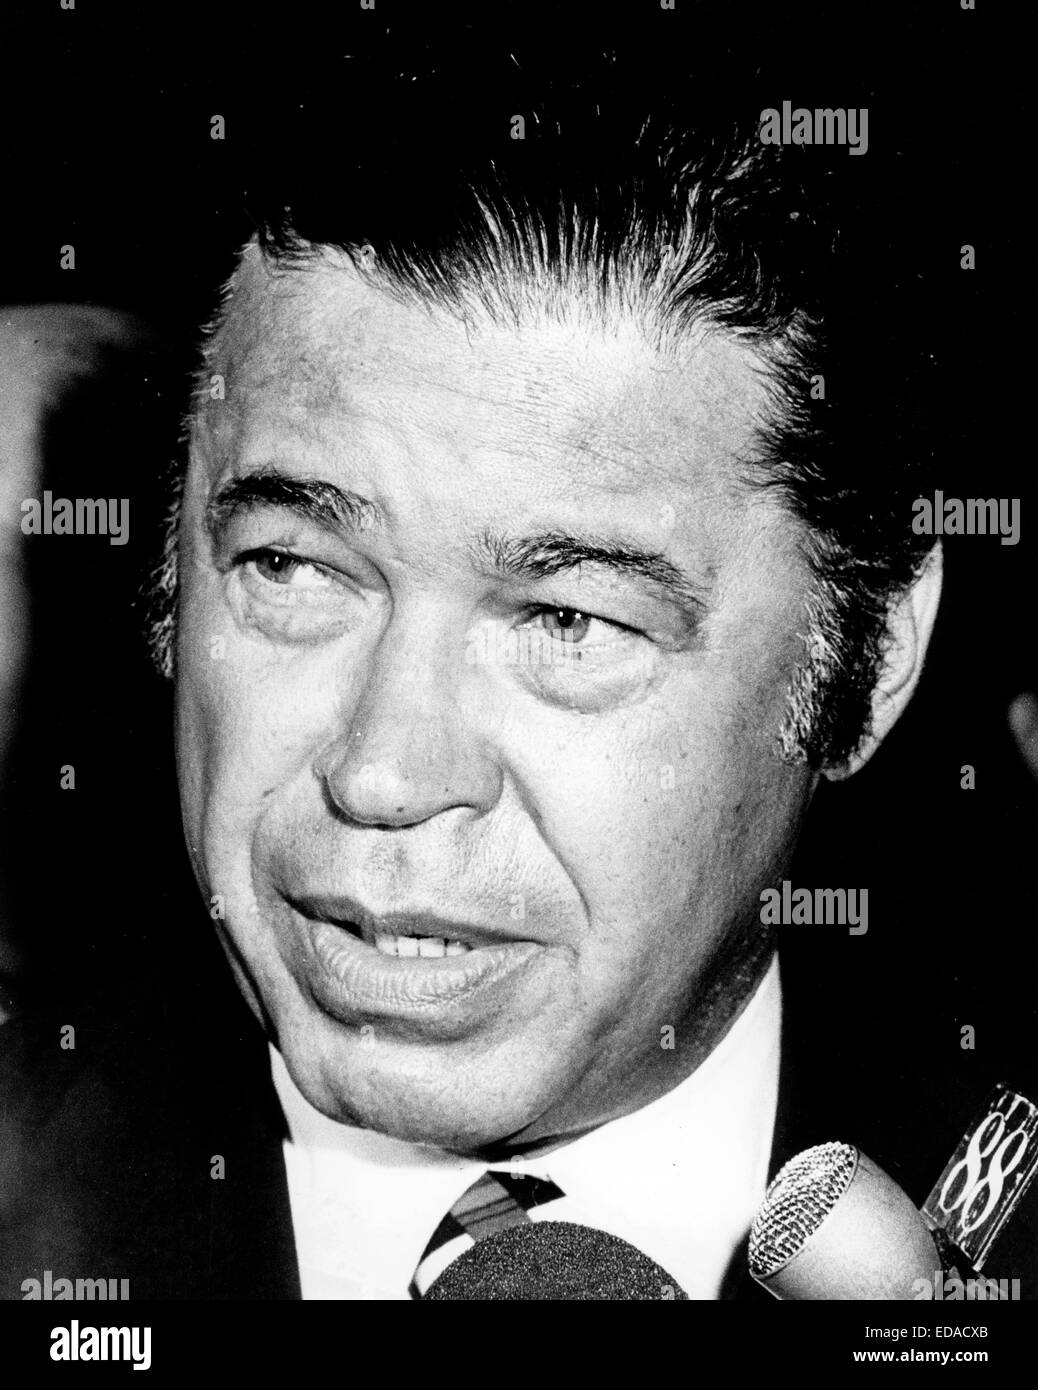 File. 3rd Jan, 2015. Edward W. Brooke (October 26, 1919 Ð January 3, 2015) the Massachusetts Republican who - Stock Image